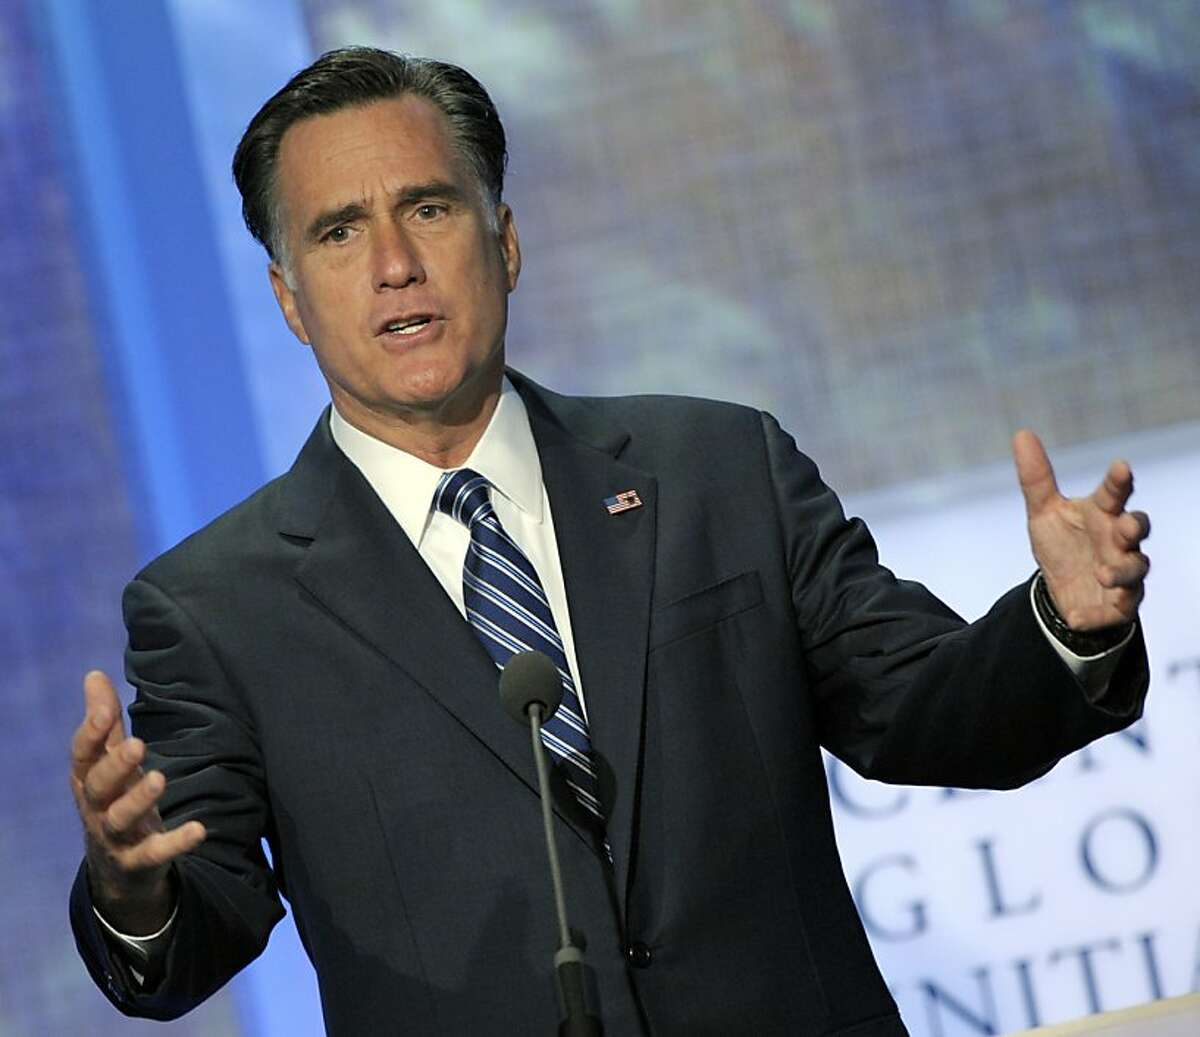 Republican presidential candidate Mitt Romney speaks at the annual meeting of the Clinton Global Initiative (CGI) in New York, U.S., on Tuesday, Sept. 25, 2012.